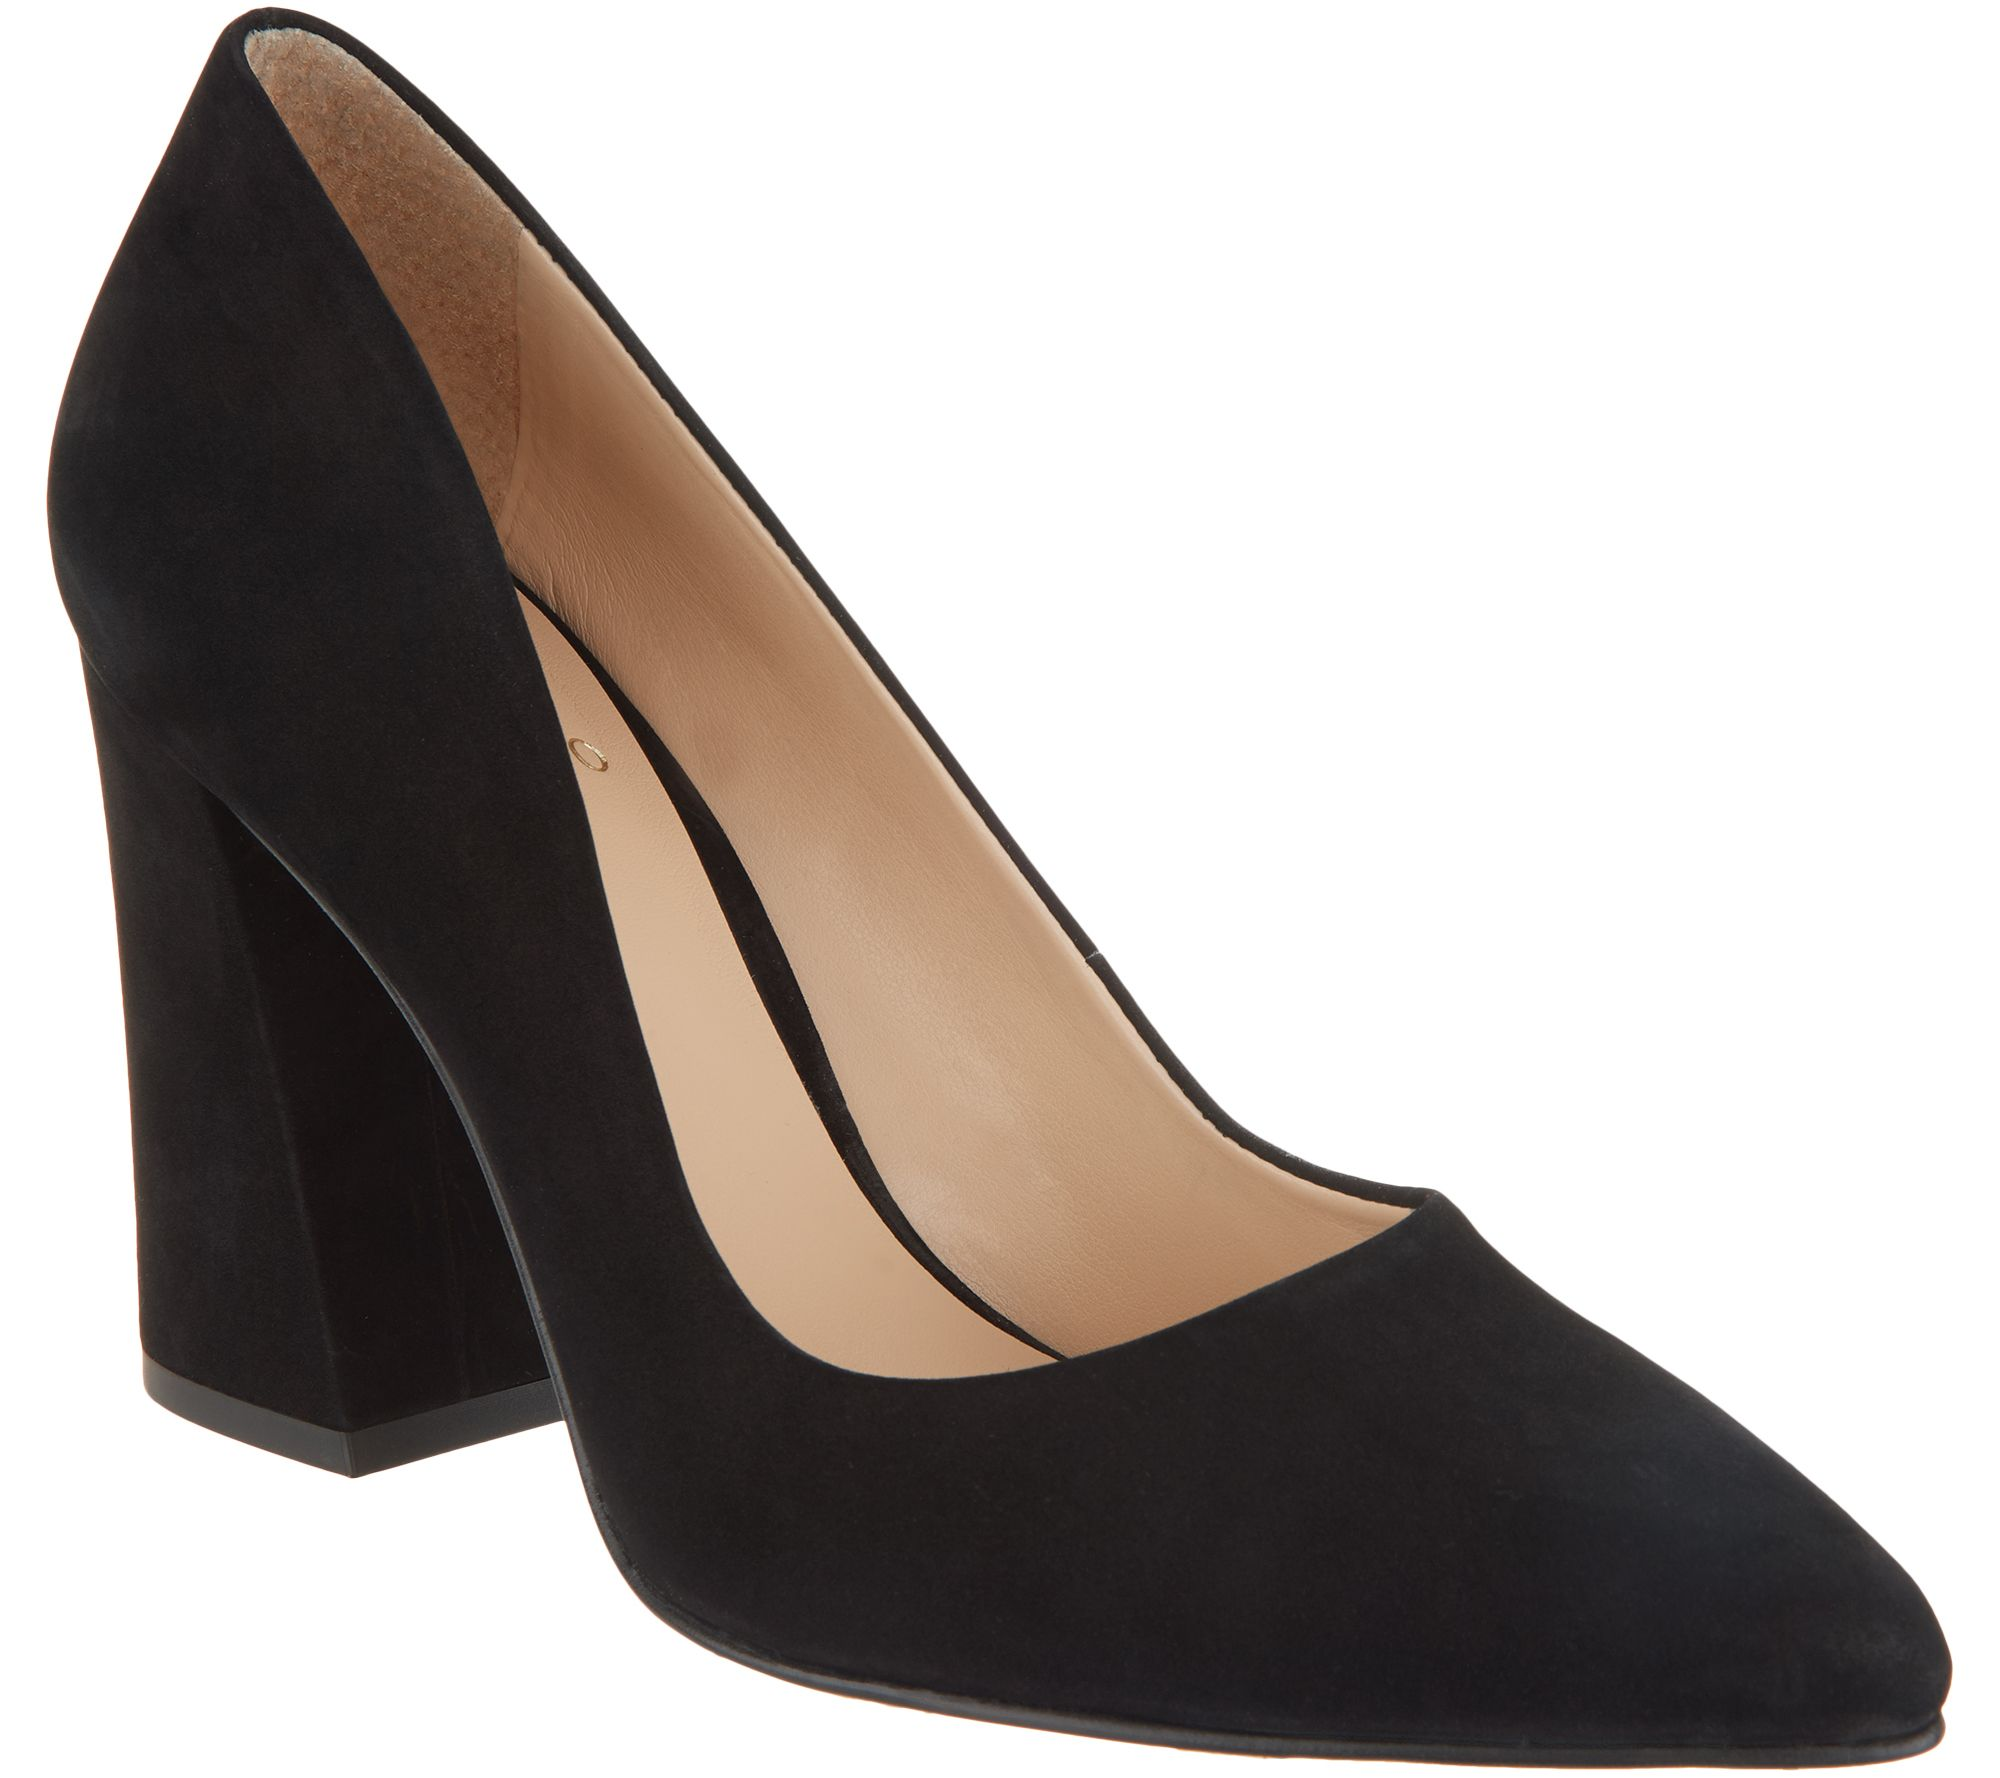 a45f59ef8 Vince Camuto Suede Pointy Toe Block Heel Pumps - Talise - Page 1 — QVC.com